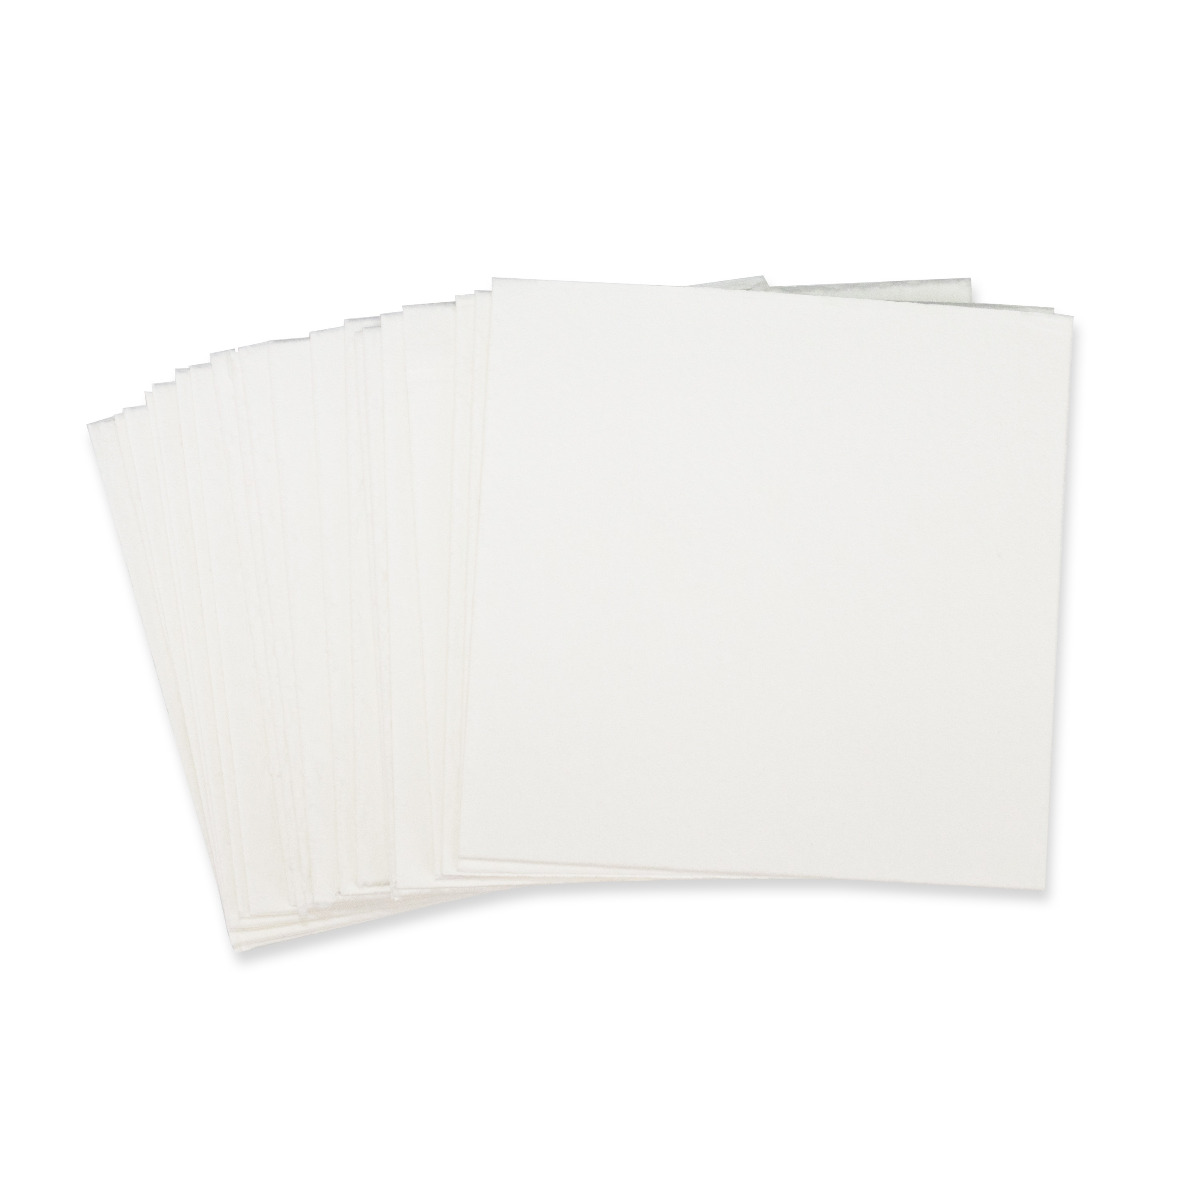 "Non-Asbestos Paper Bases - Square Base - 4"" x 4"""